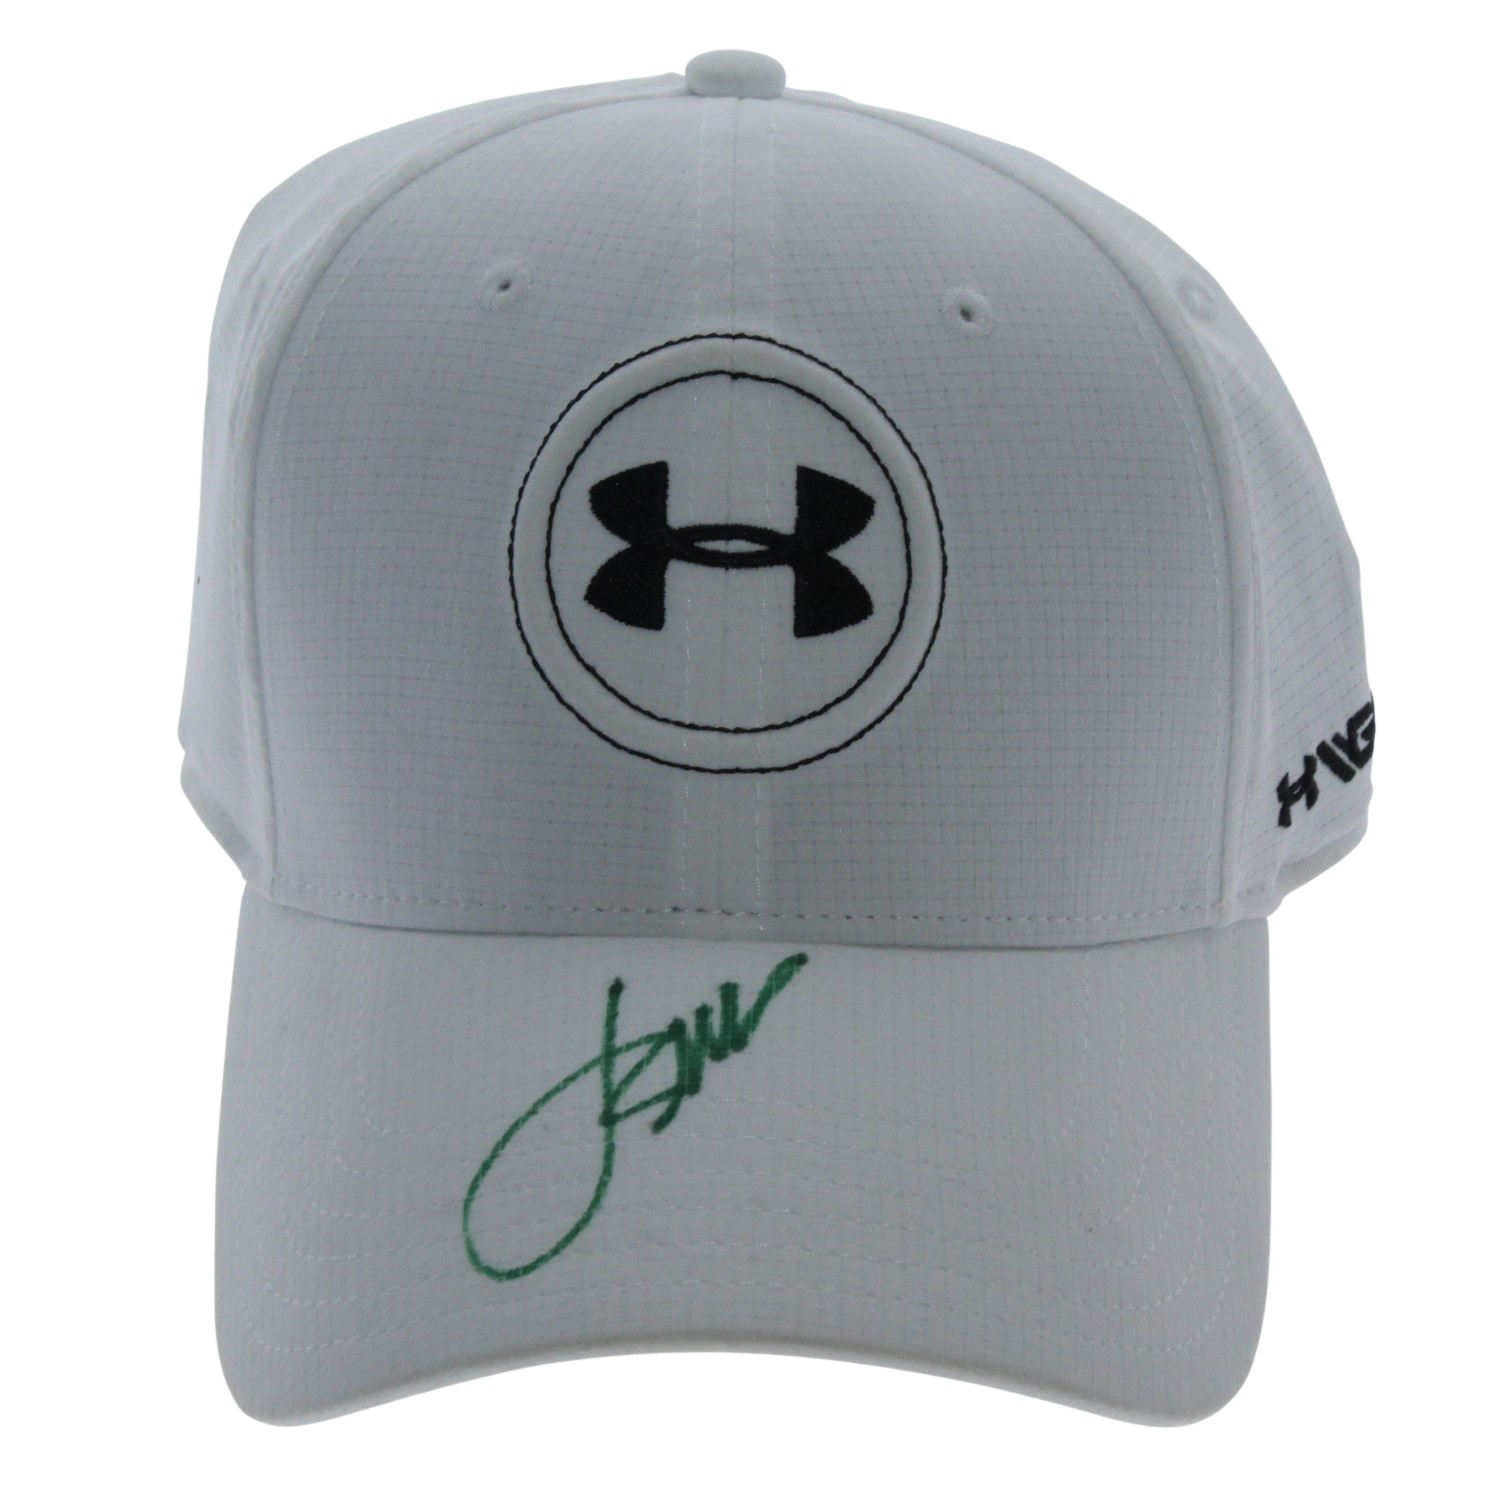 91343db31a15 Lot Detail - Jordan Spieth Signed White Under Armor Hat JSA ALOA